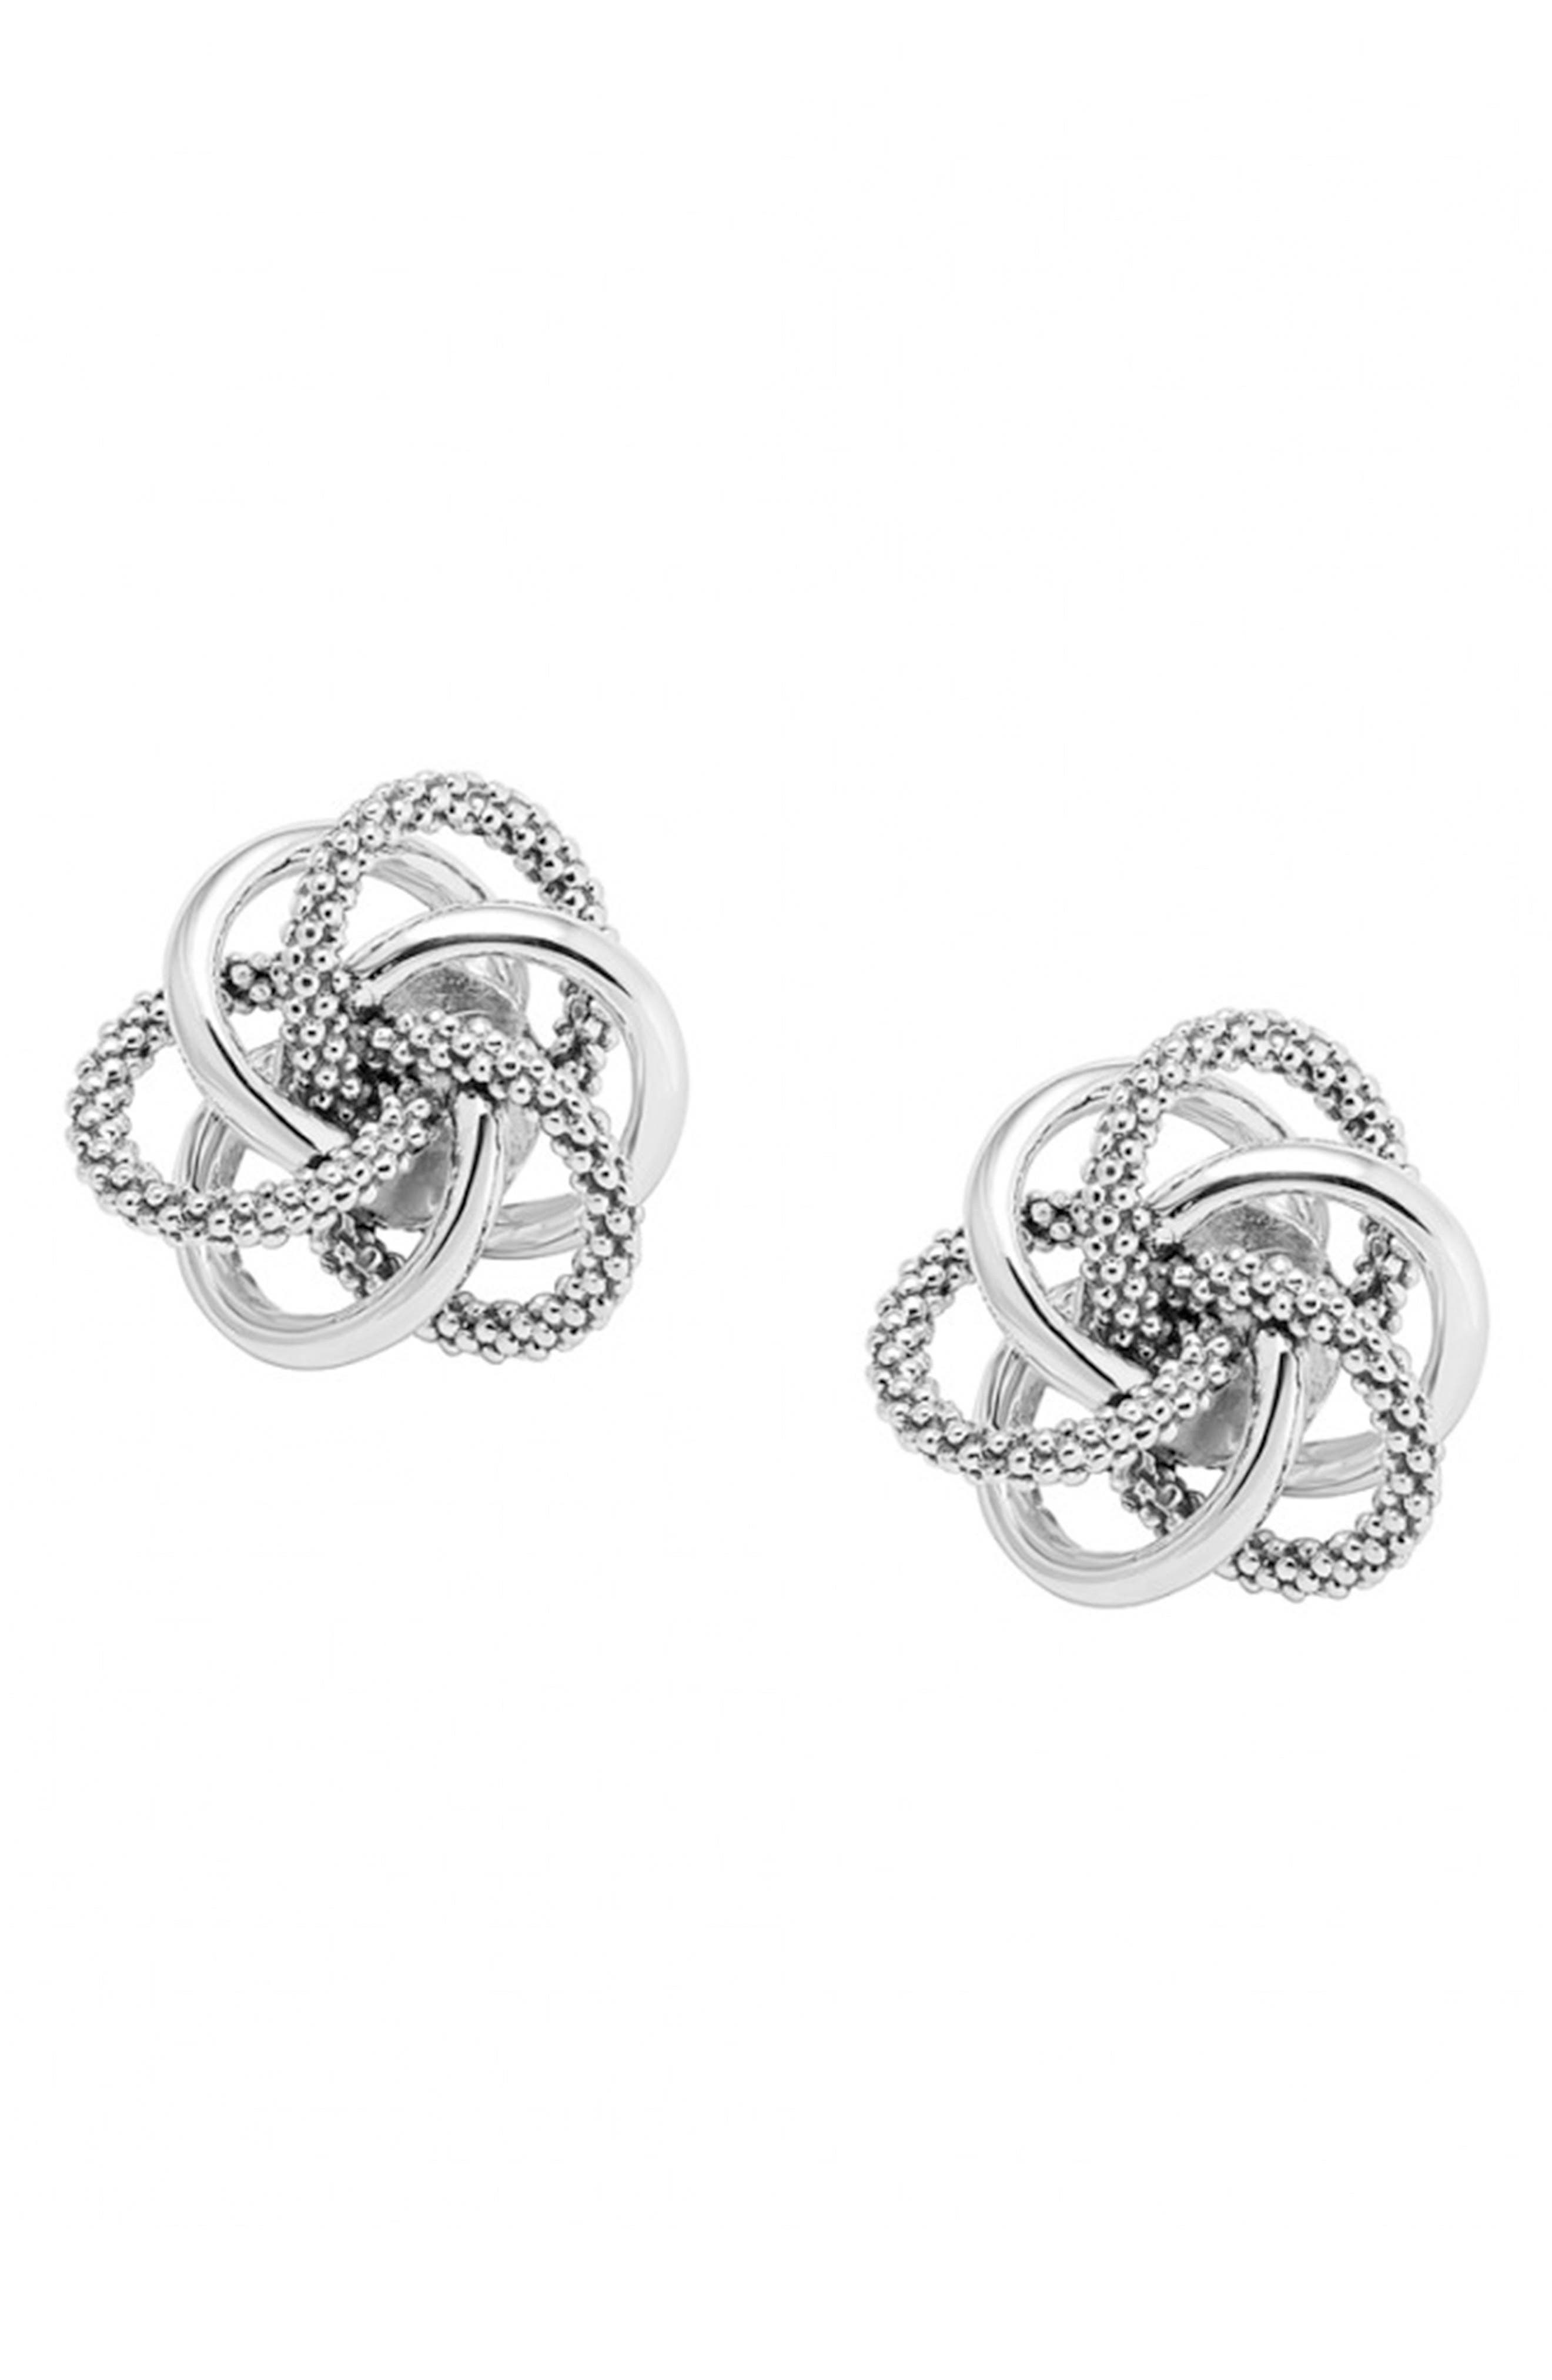 Caviar<sup>™</sup> Stud Earrings,                             Alternate thumbnail 2, color,                             Sterling Silver